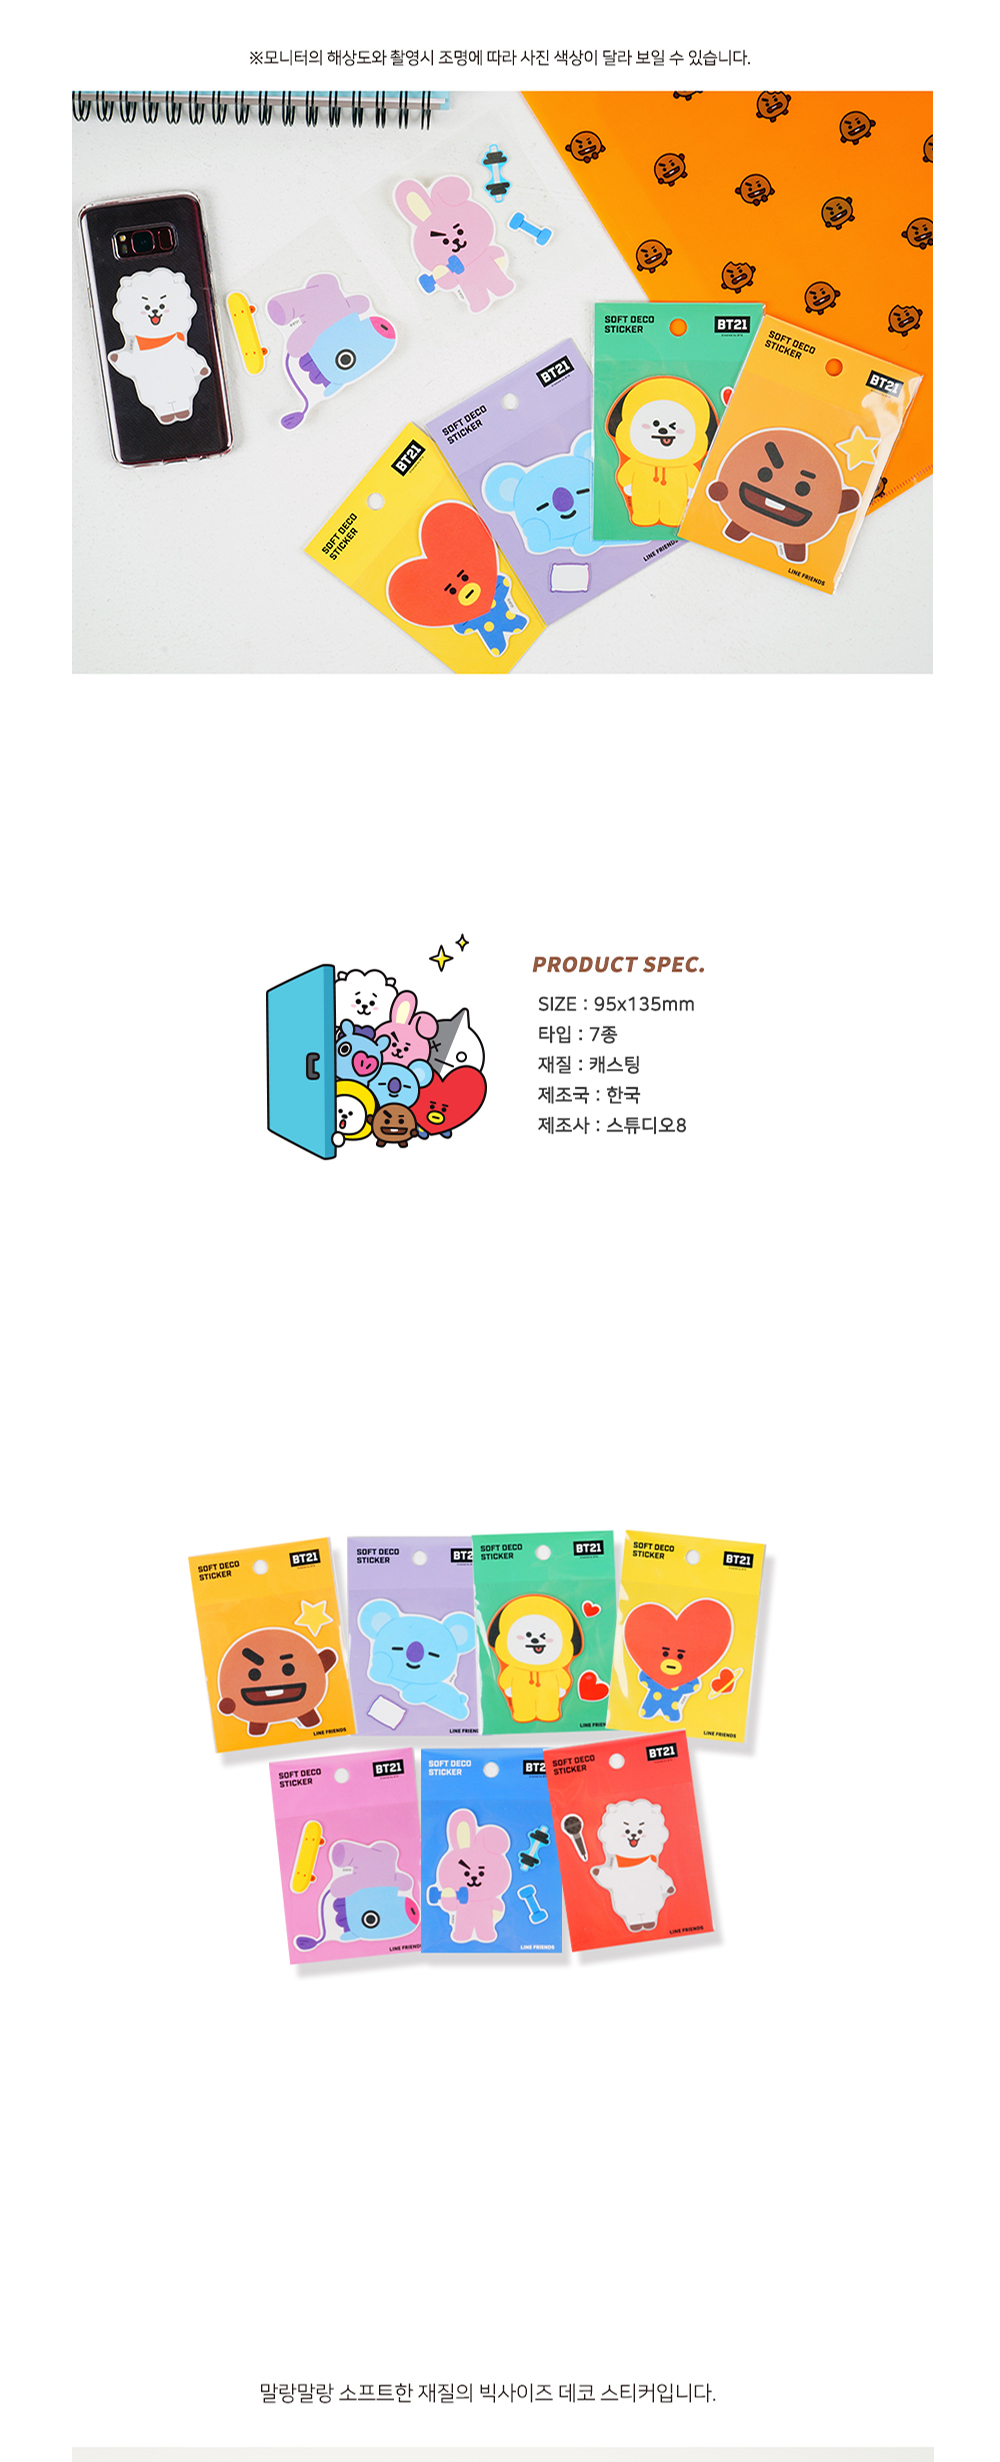 bt21_kf_softdecosticker_02.jpg